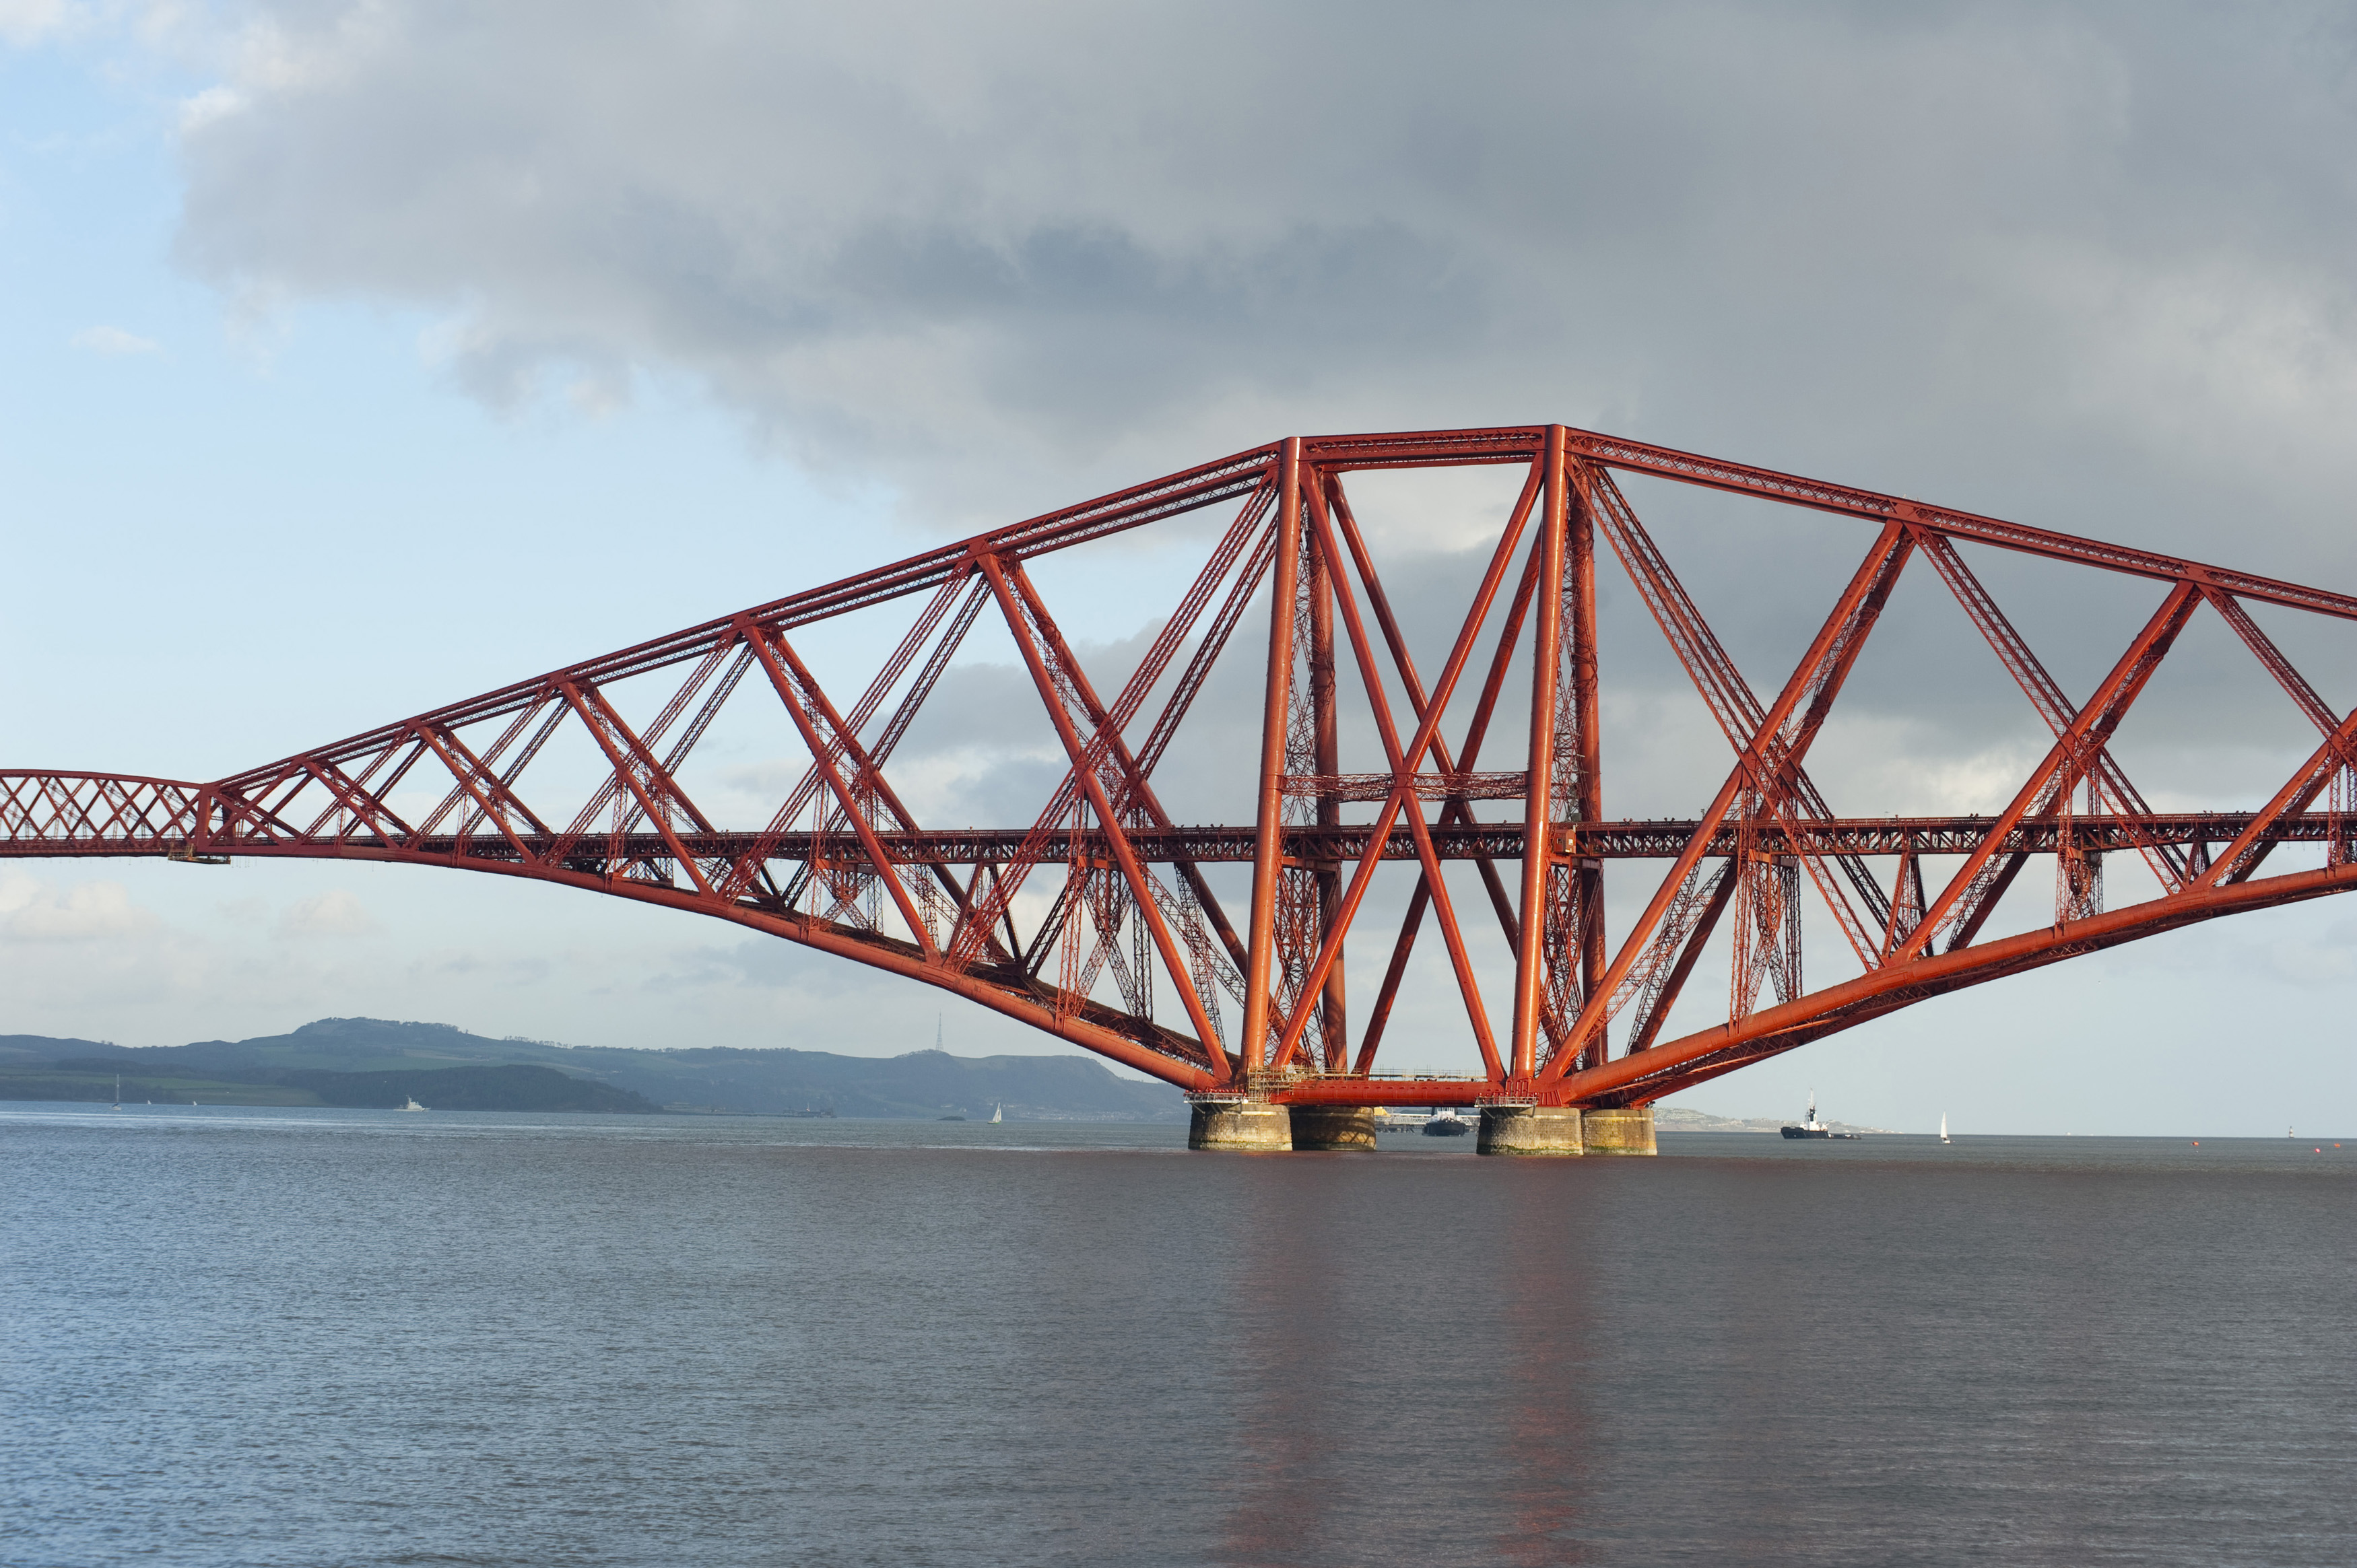 The famous forth rail bridge in scotland, the canteliver design was chosen after the faliure of a bridge similiar to the original design proposed. the bridge is considdered an engineering masterpiece of the victorian era, each tower is 100m tall and stands of large stone caissons